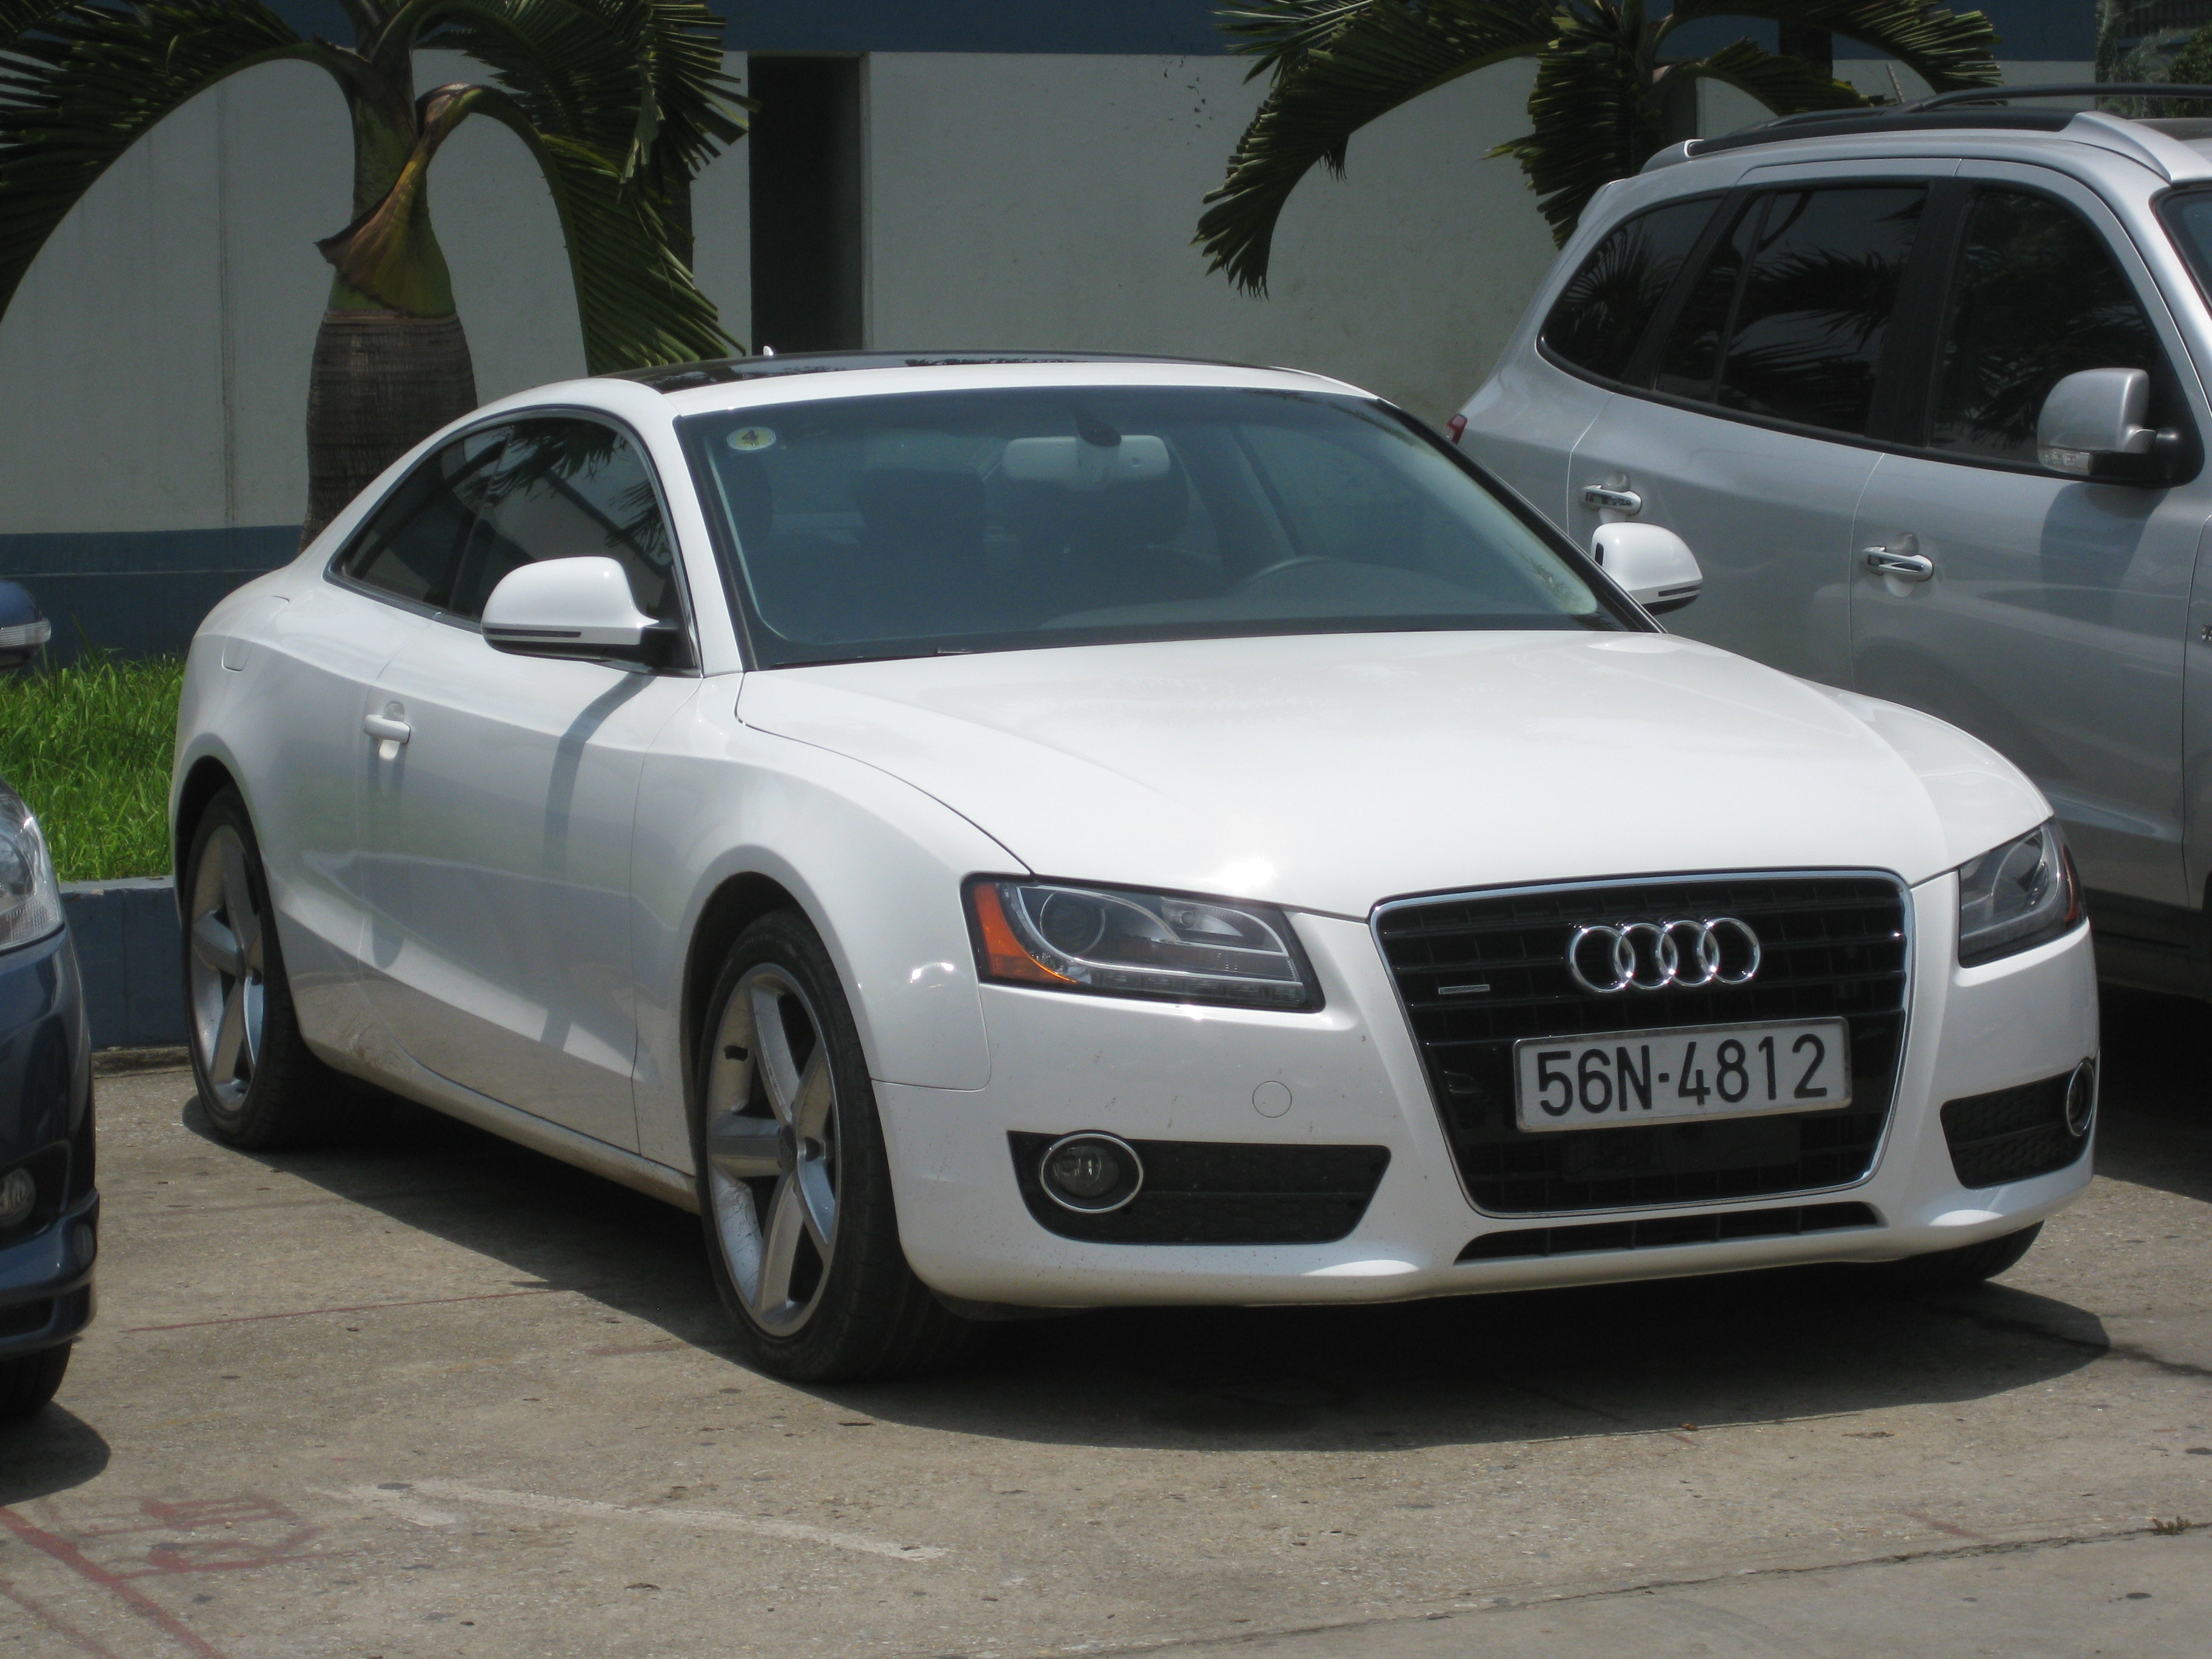 2009 Audi A5 Images Pictures And Videos